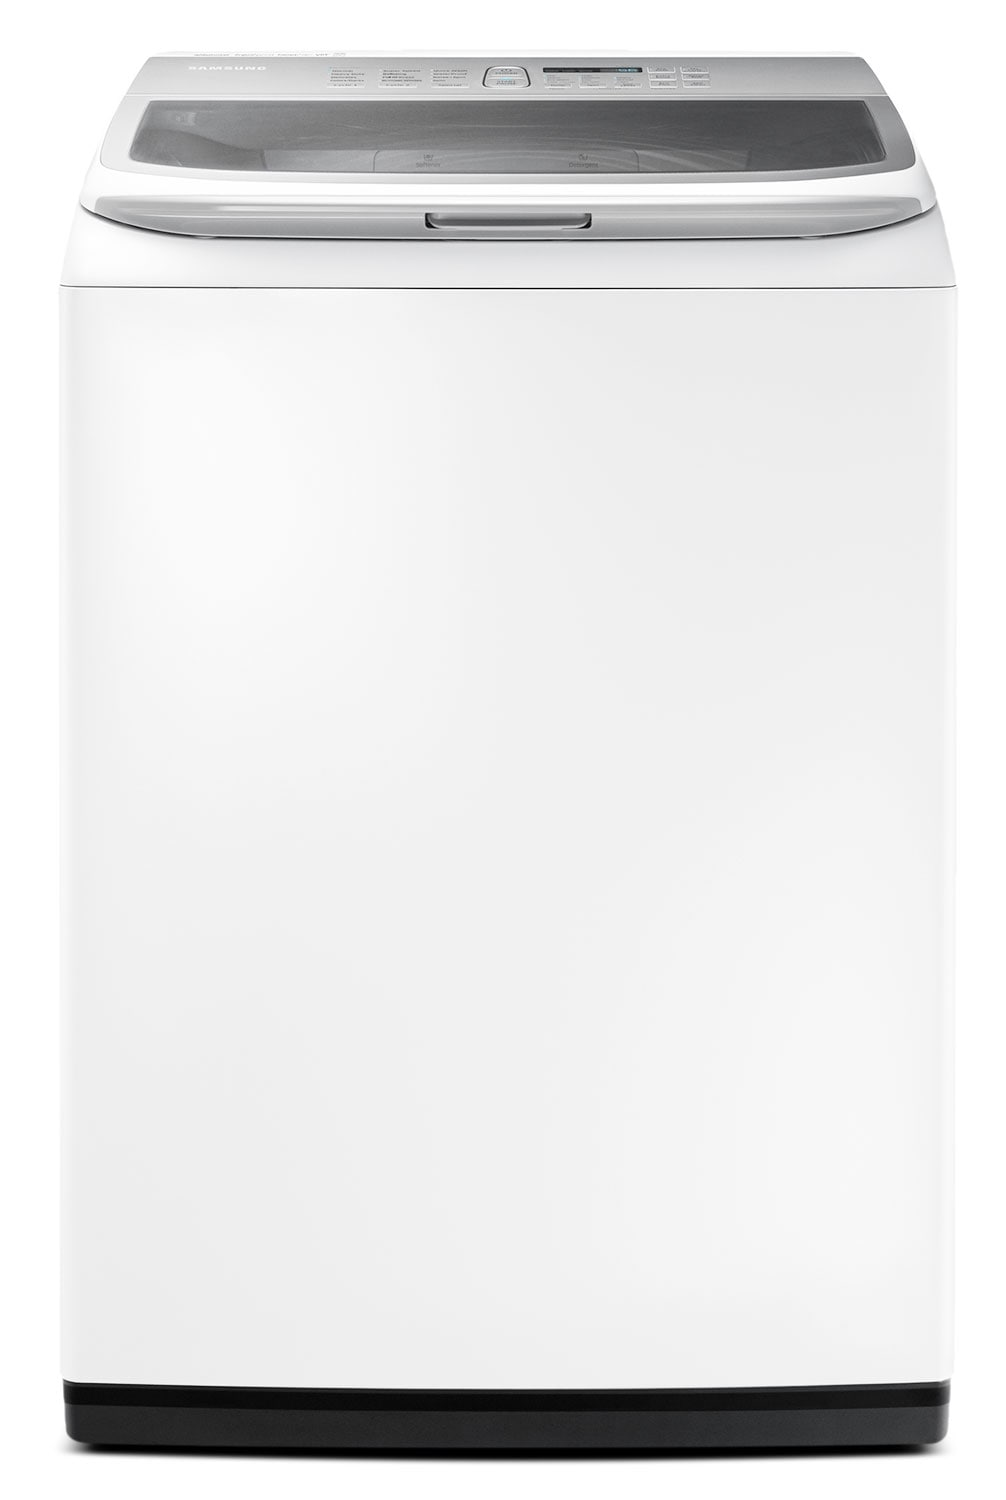 Washers and Dryers - Samsung 5.2 Cu. Ft. Top-Load Washer – WA45K7600AW/A2